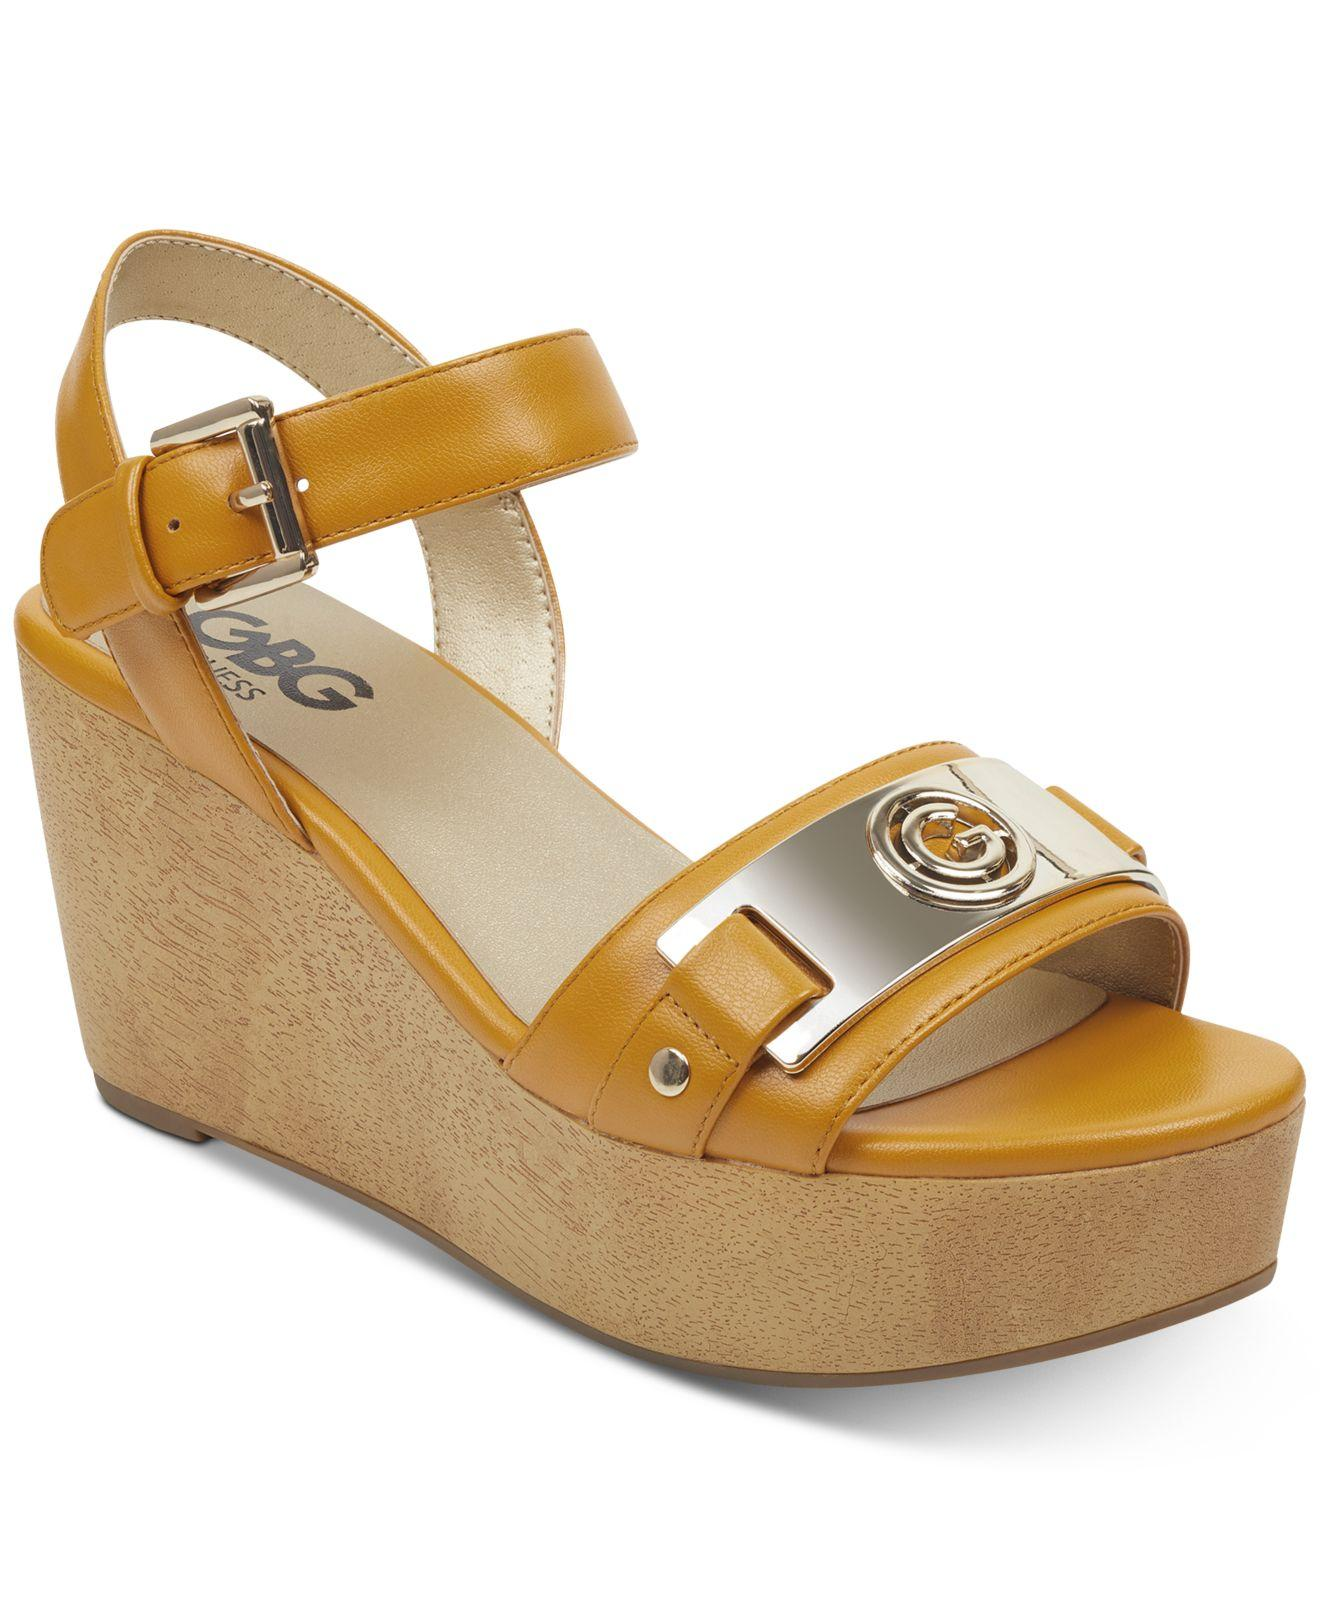 8d83e14a33 G by Guess Danna Platform Wedge Sandals in Yellow - Save 3% - Lyst